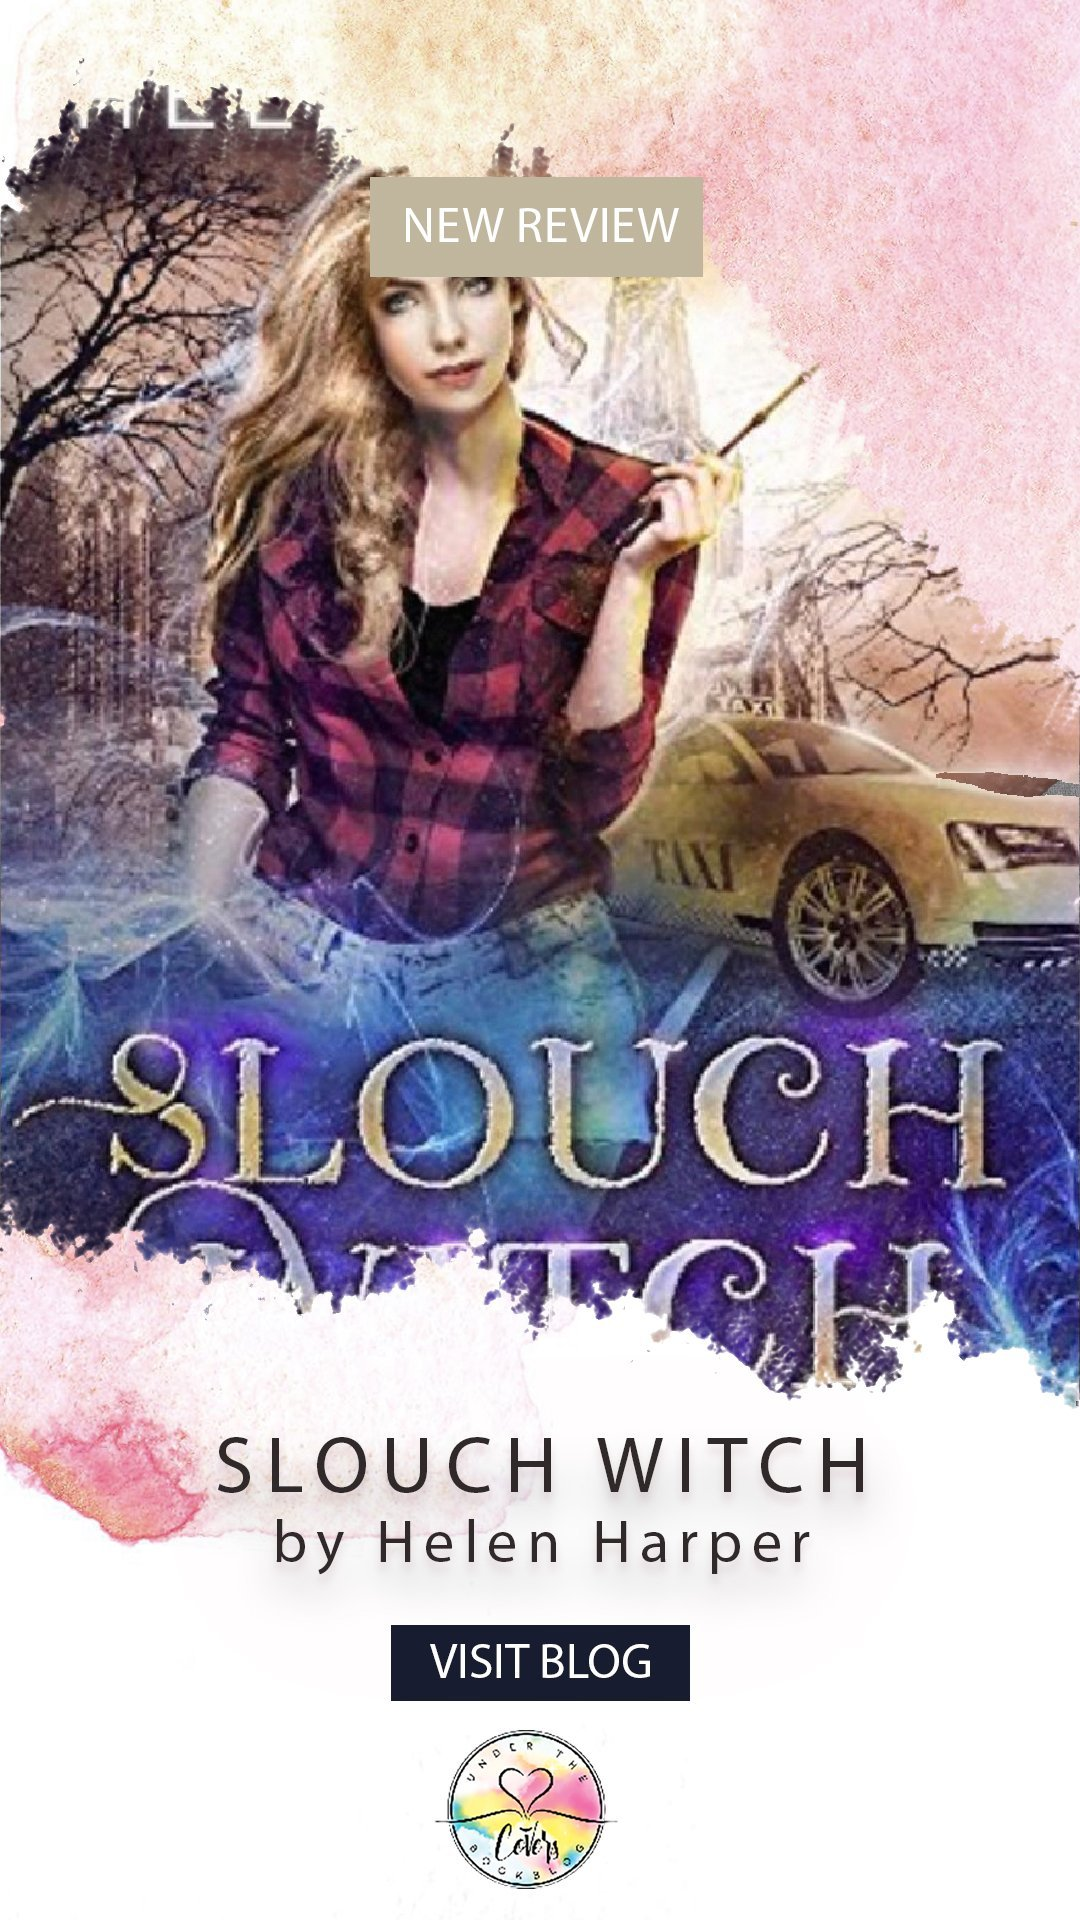 Review: Slouch Witch by Helen Harper